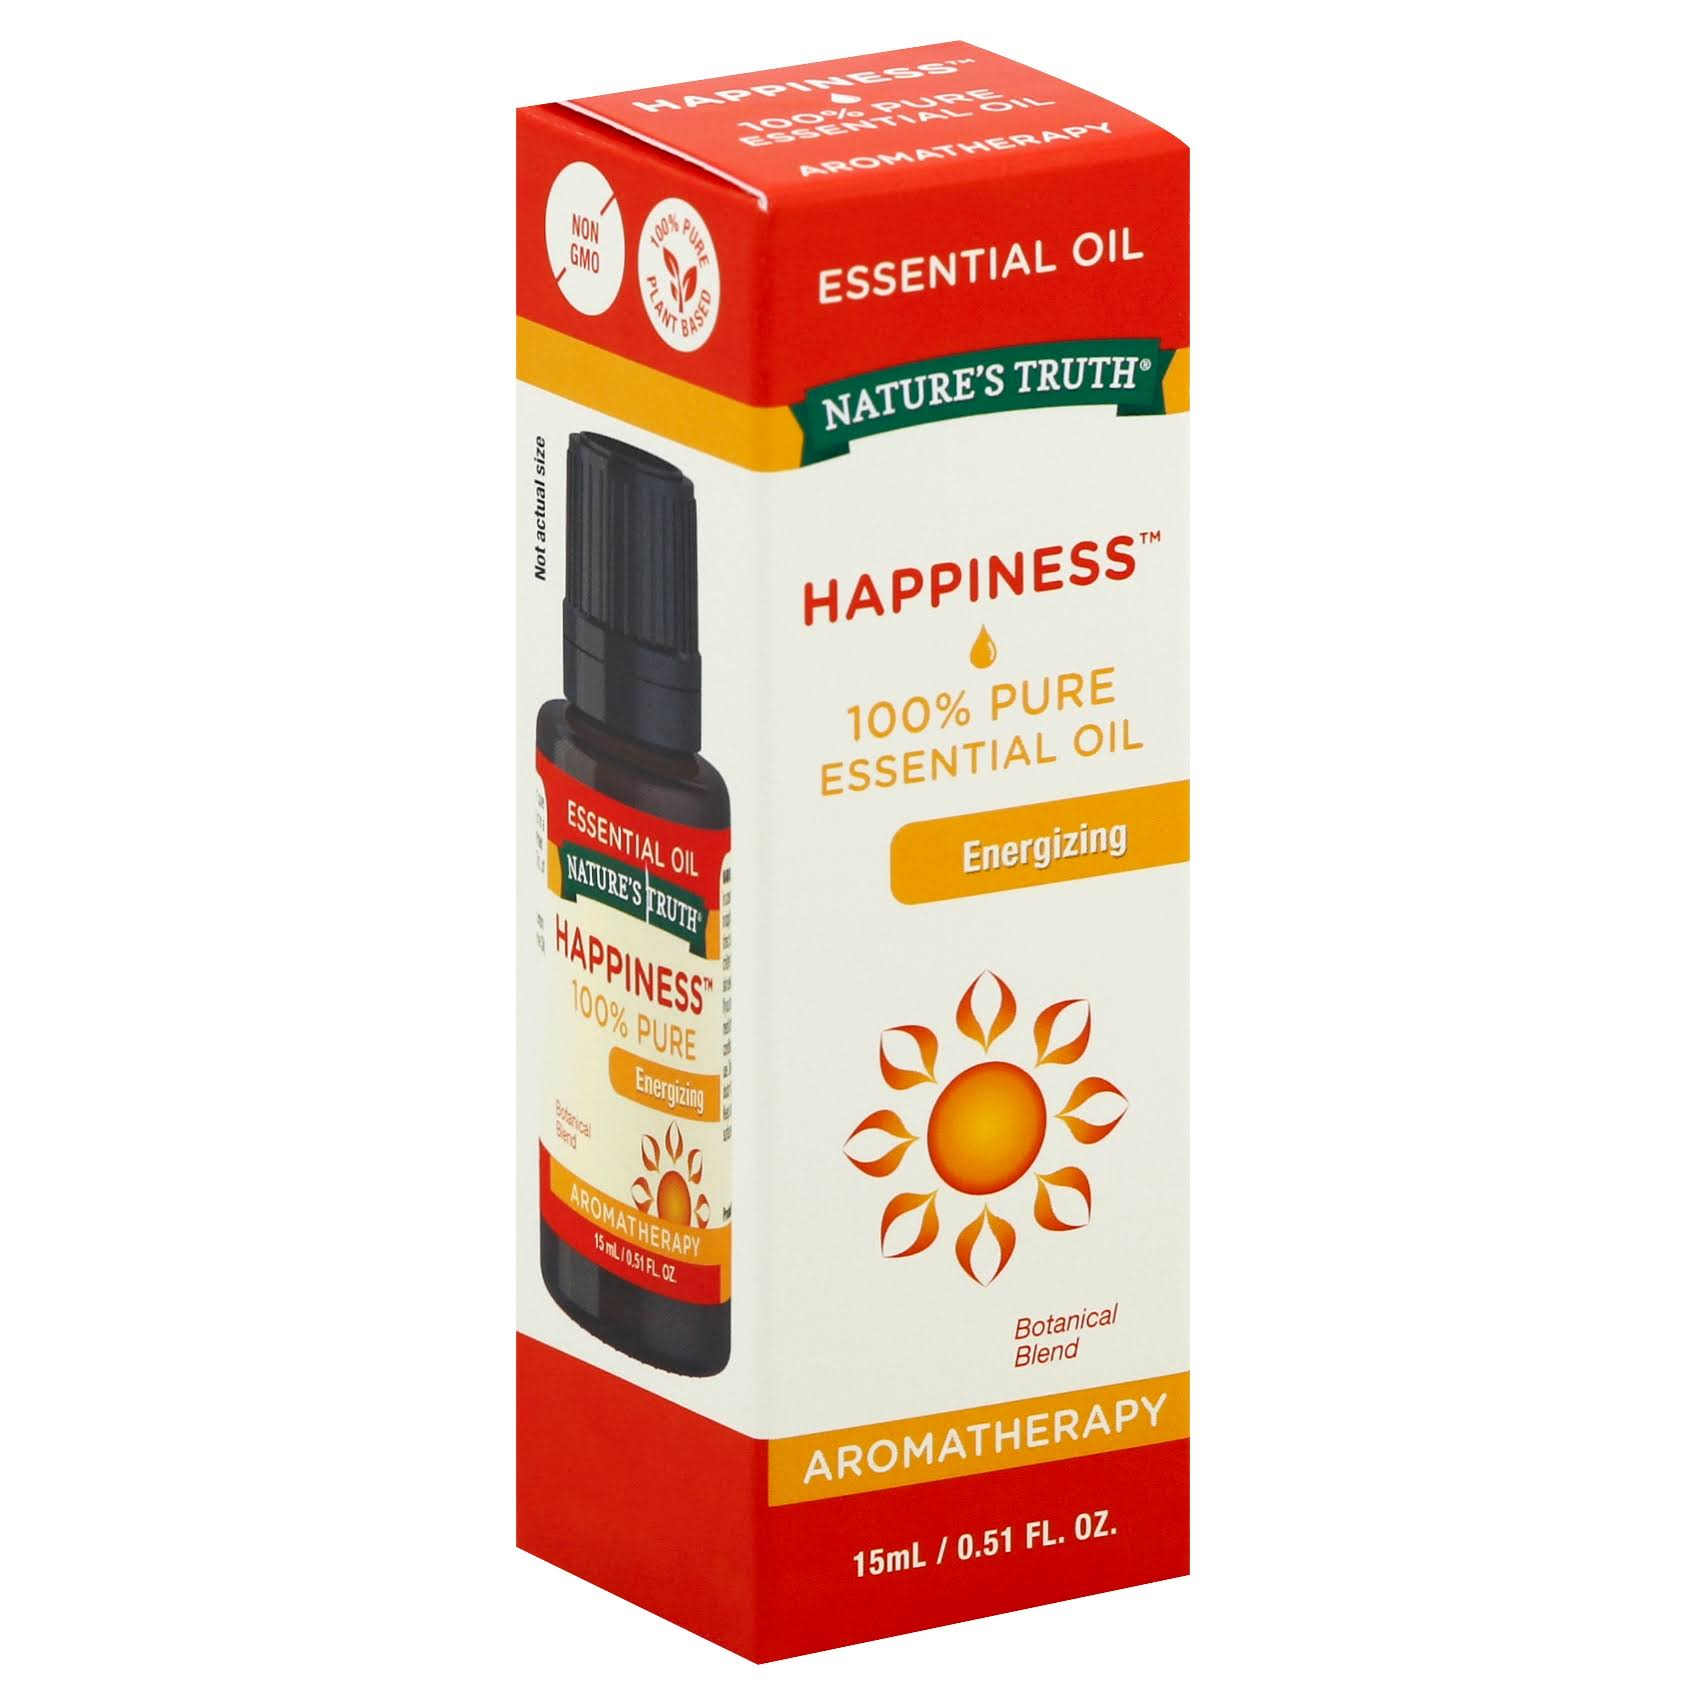 Nature's Truth Happiness Aromatherapy Energizing Botanical Blend Essential Oil - 15ml